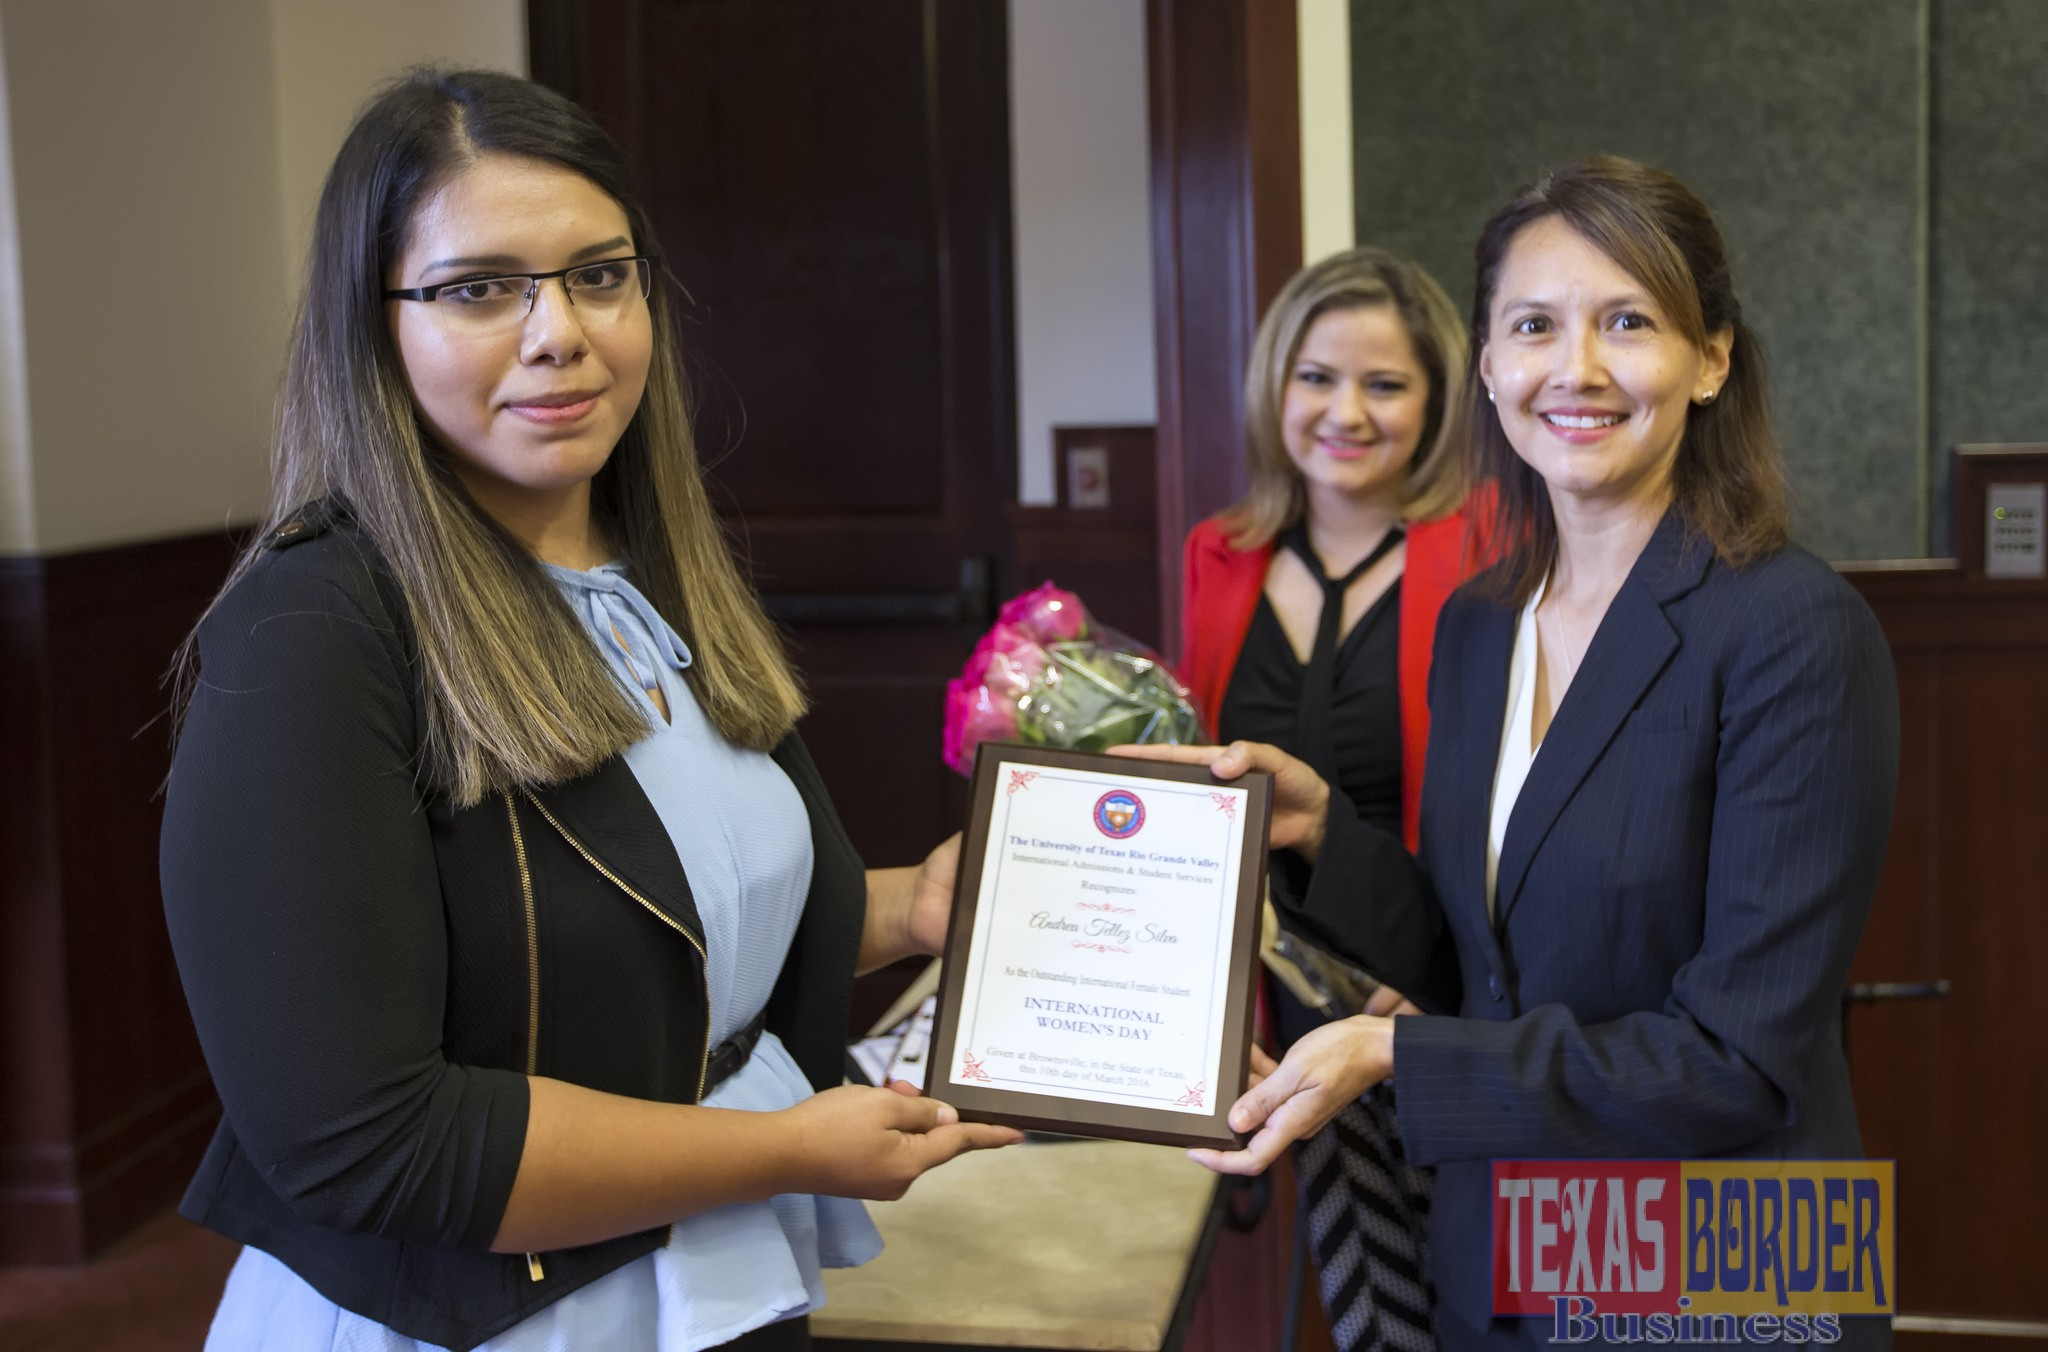 UTRGV celebrated International Women's Day on the Brownsville Campus on Thursday, and named Andrea Silva, left, an Outstanding International Female Student. Presenting her award is Karina Stiles-Cox, chair of the Women's Faculty Network. (UTRGV Photo by David Pike)